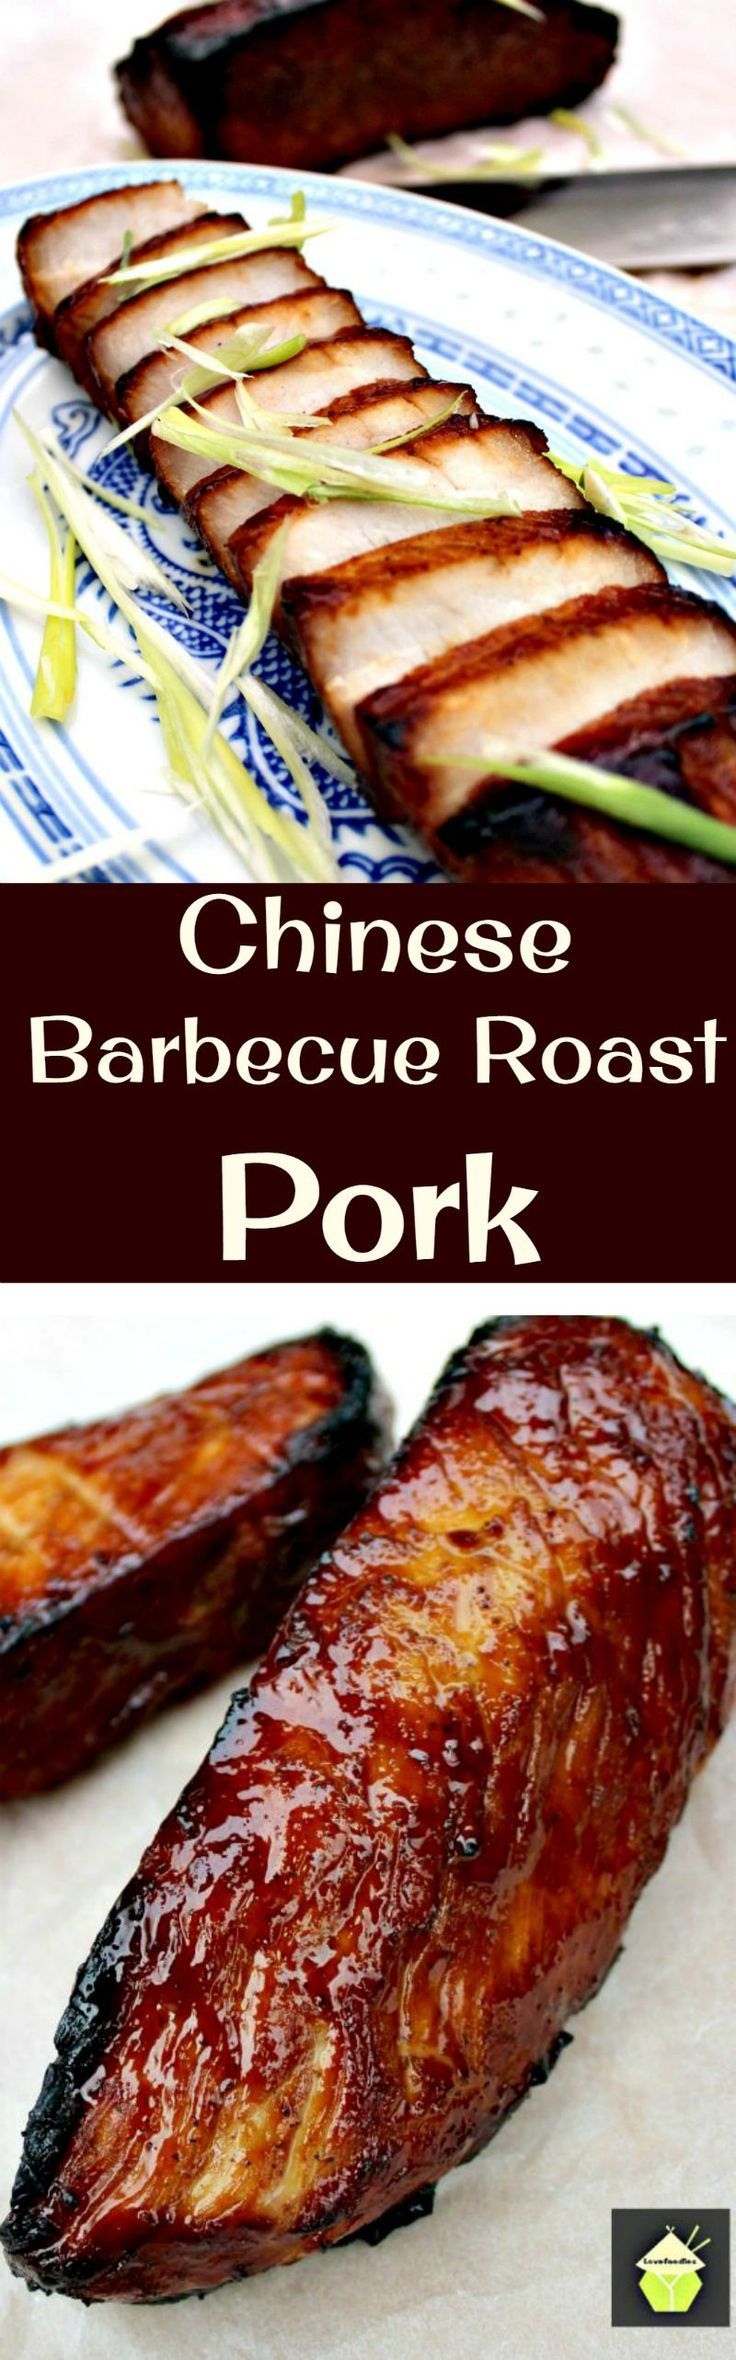 Chinese Barbecue Pork, (Char Sui Pork), is a delicious recipe, full of flavor. It's sticky, sweet and slightly caramelised and goes perfect with a bowl of noodles, fried rice or simply eaten on it's own as an appetizer! A Great dish for Chinese New Year.